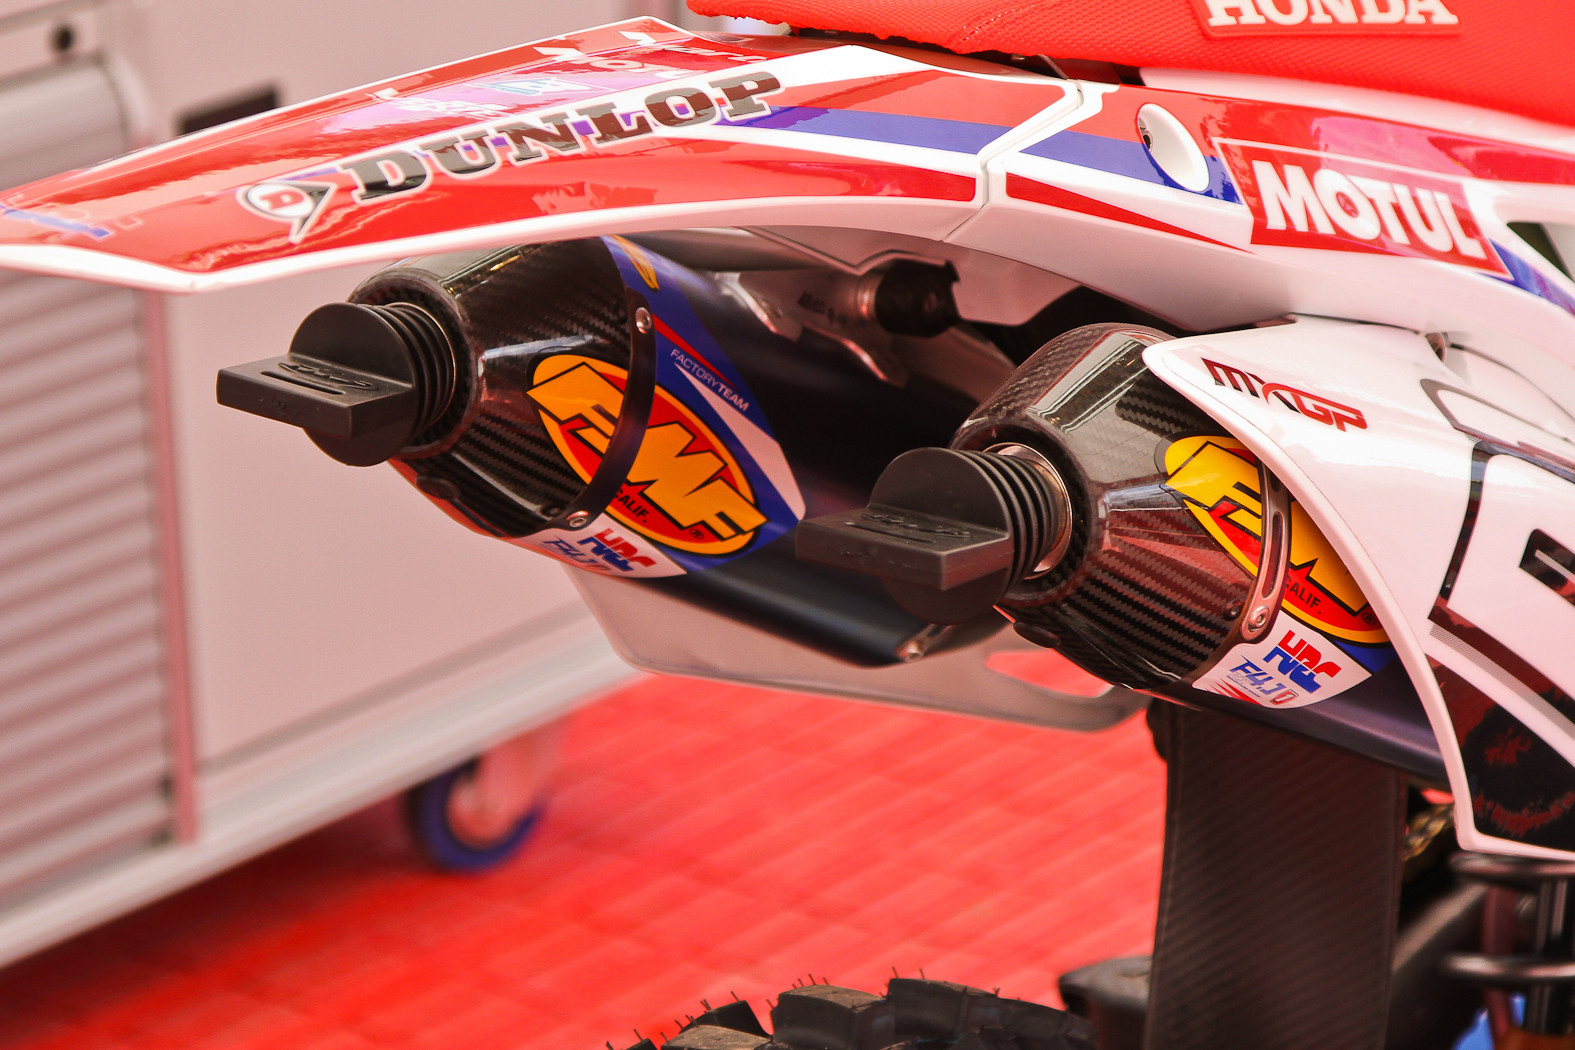 FMF Racing - In the Pits: MXGP of Europe - Motocross Pictures - Vital MX